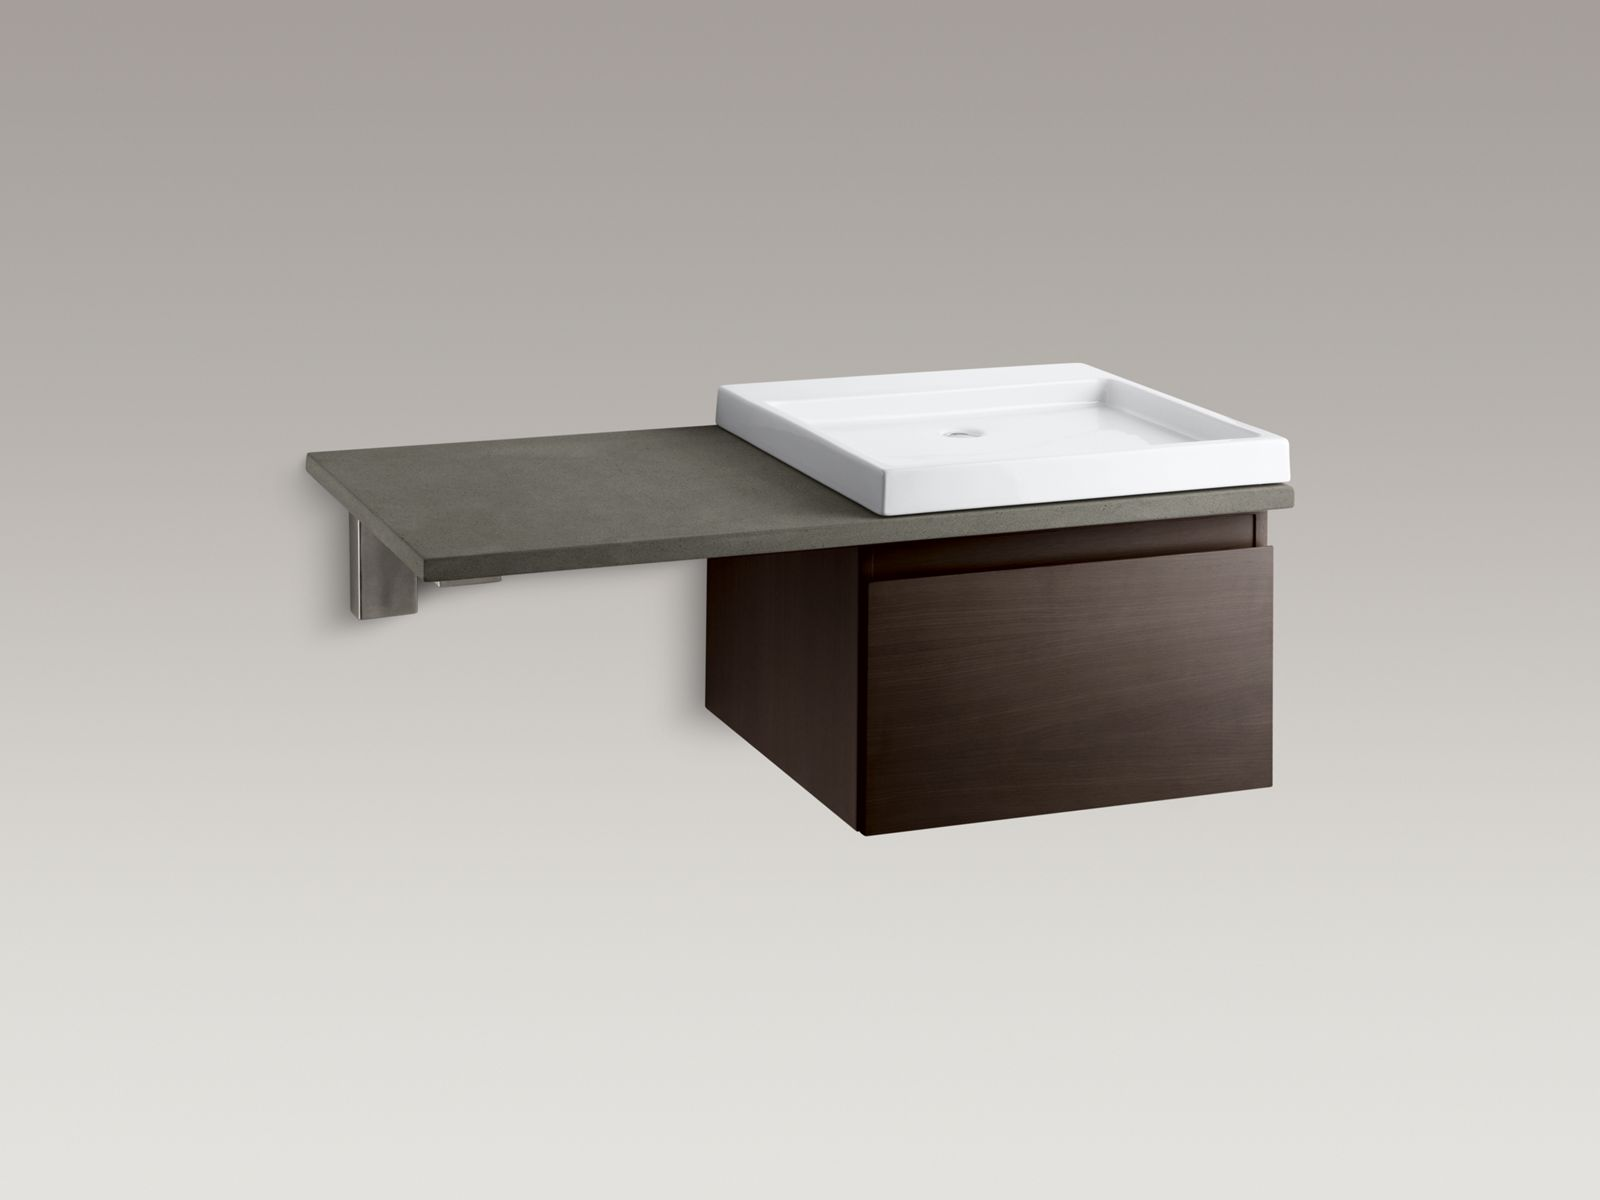 Shown with Purist®  vanity K-3081-F4, Wading Pool® lavatory K-2314-0, and countertop bracket K-9676-NA and standard pop-up drain, not included.